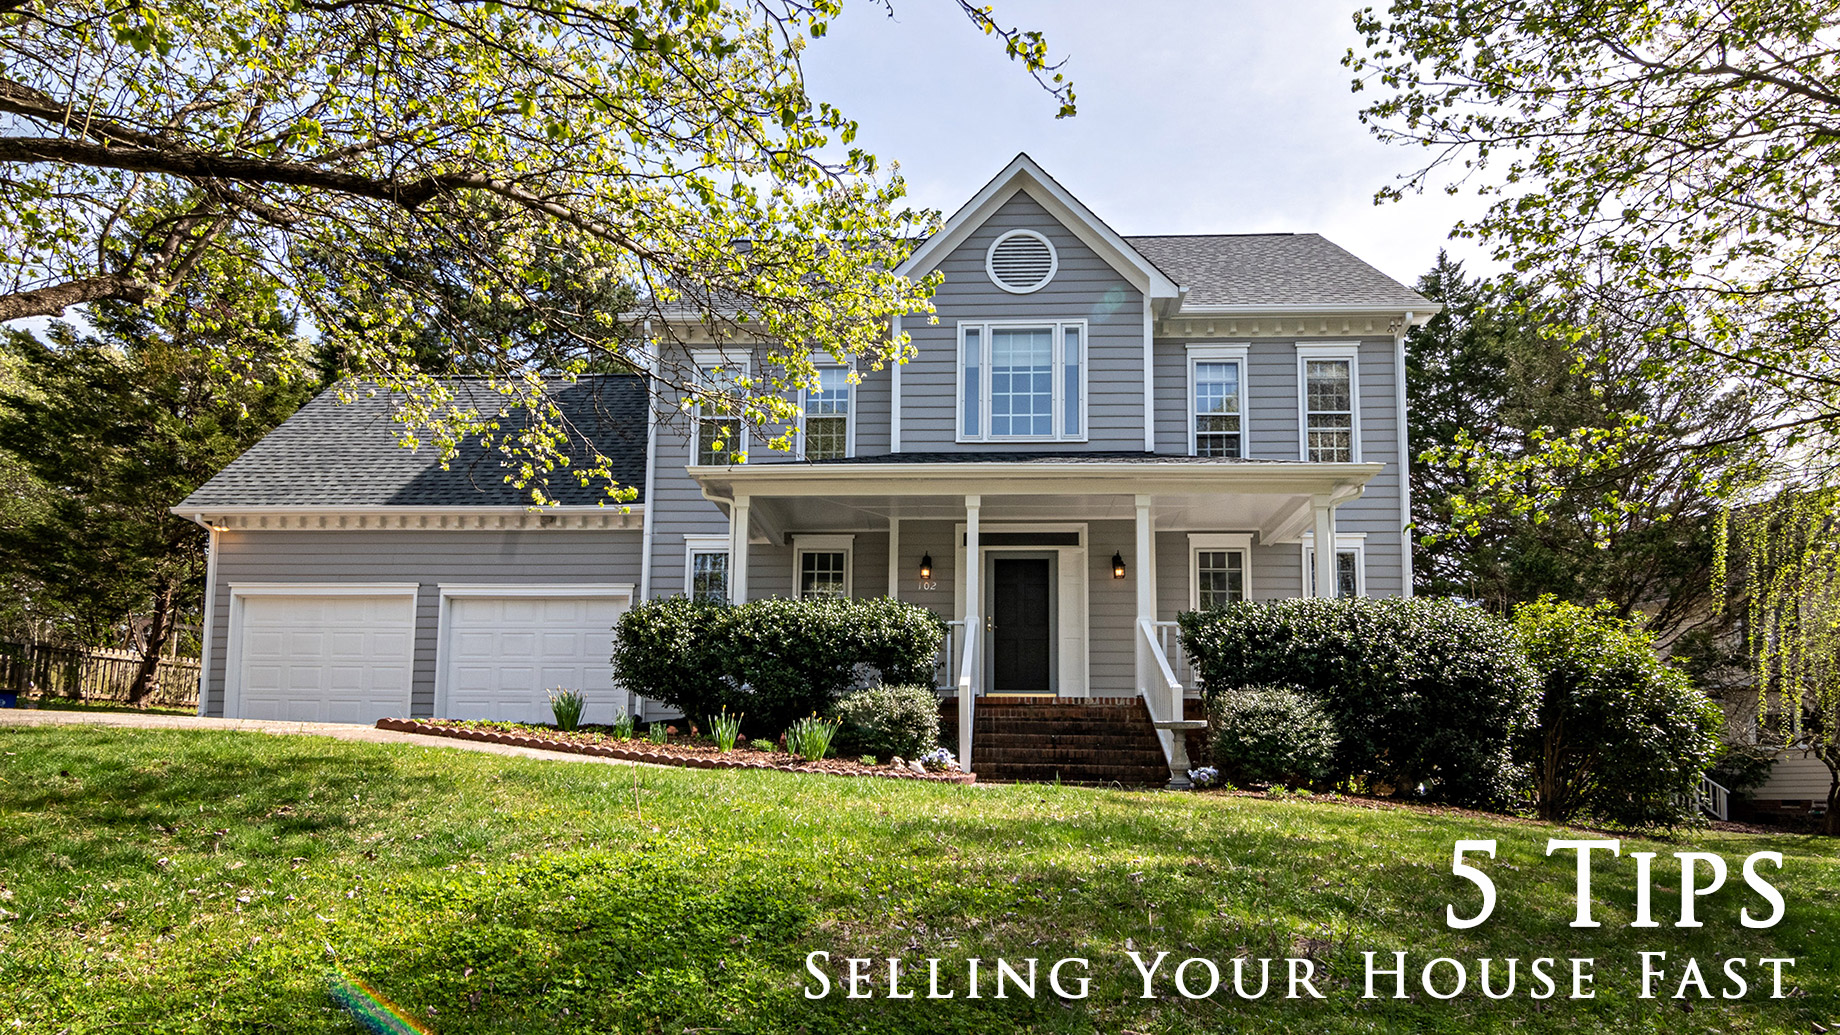 5 Tips for Selling Your House Fast